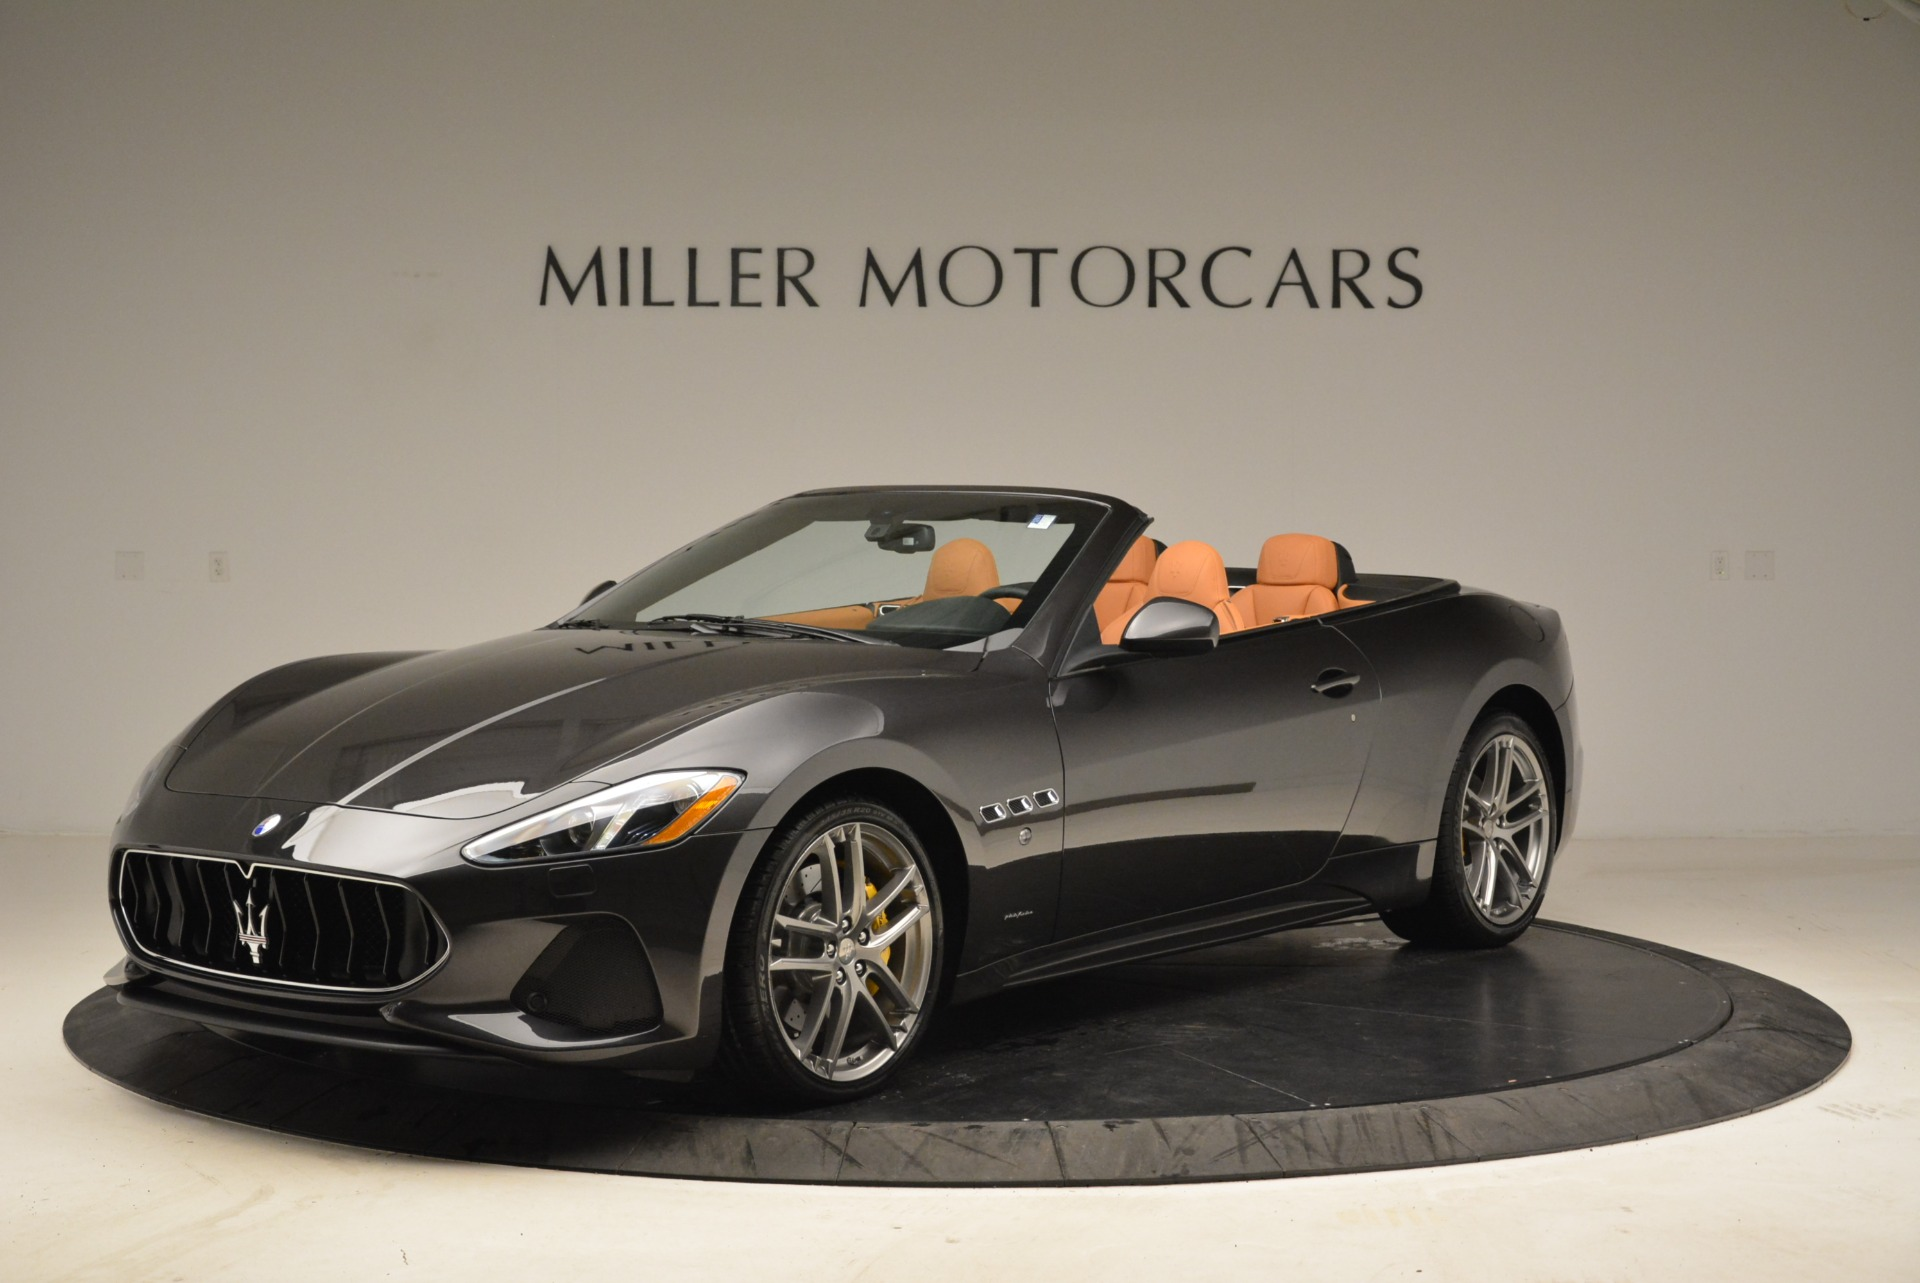 Used 2018 Maserati GranTurismo Sport Convertible for sale Sold at Rolls-Royce Motor Cars Greenwich in Greenwich CT 06830 1